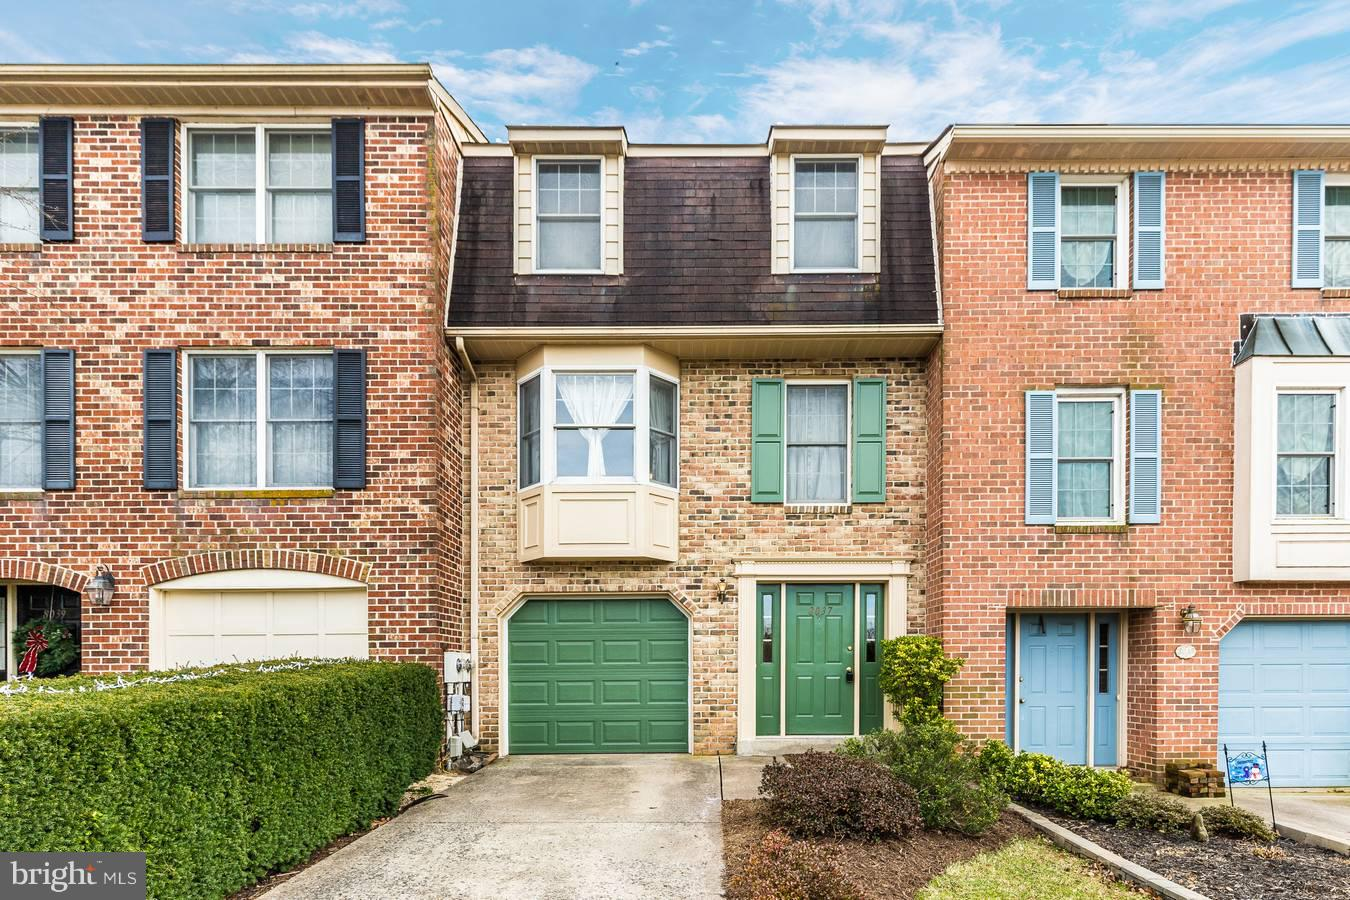 8037 HOLLOW REED COURT, FREDERICK, MD 21701